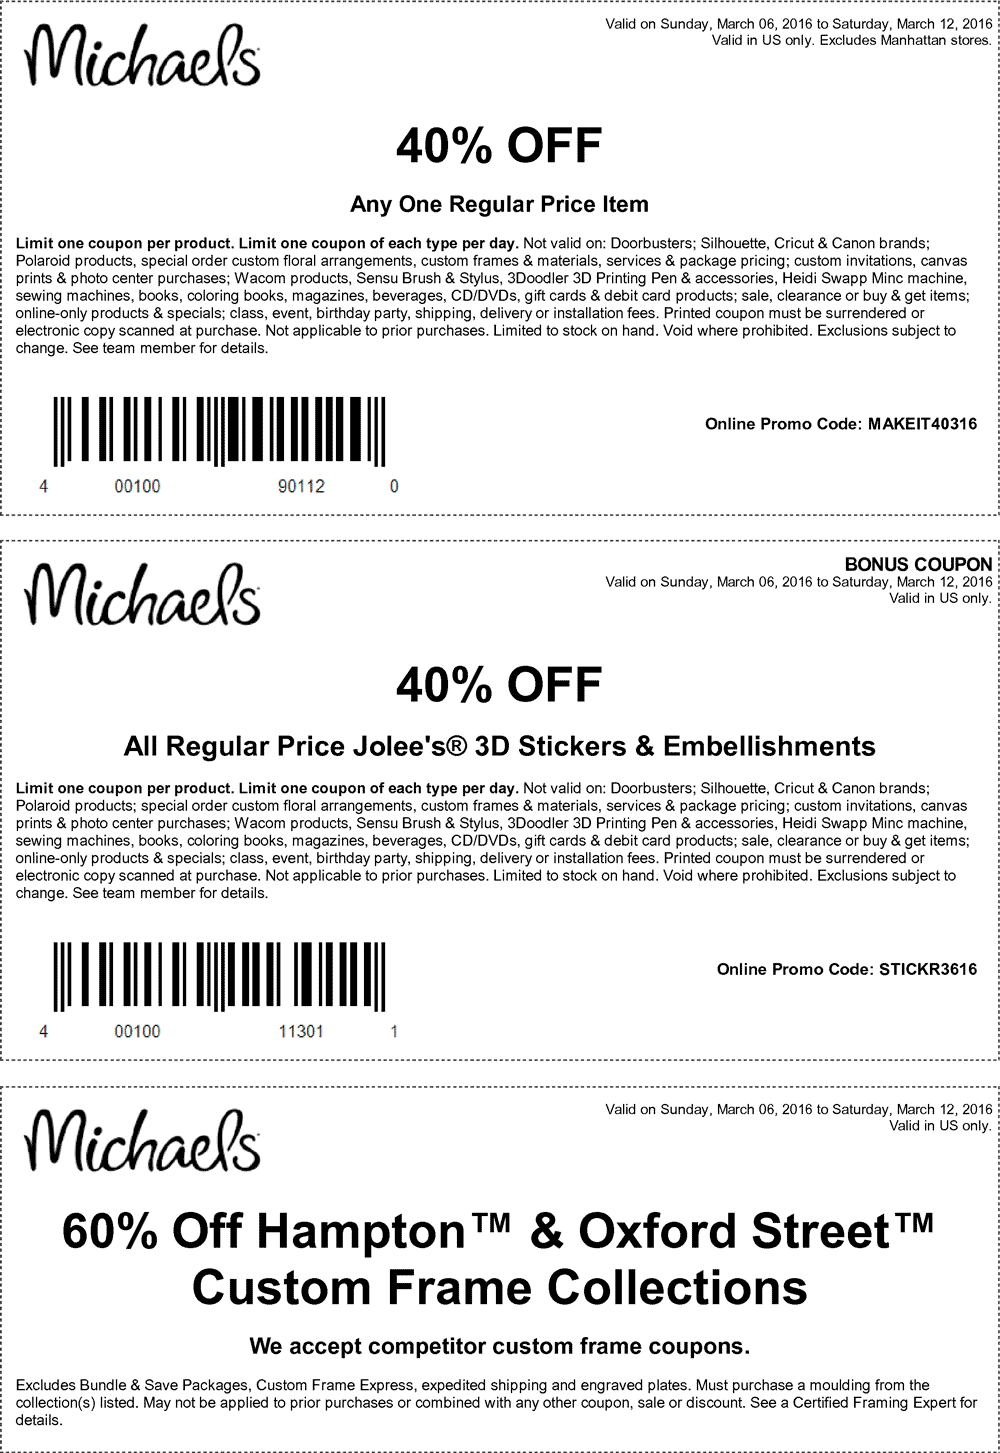 Michaels Coupon September 2017 40% off a single item at Michaels, or online via promo code MAKEIT40316